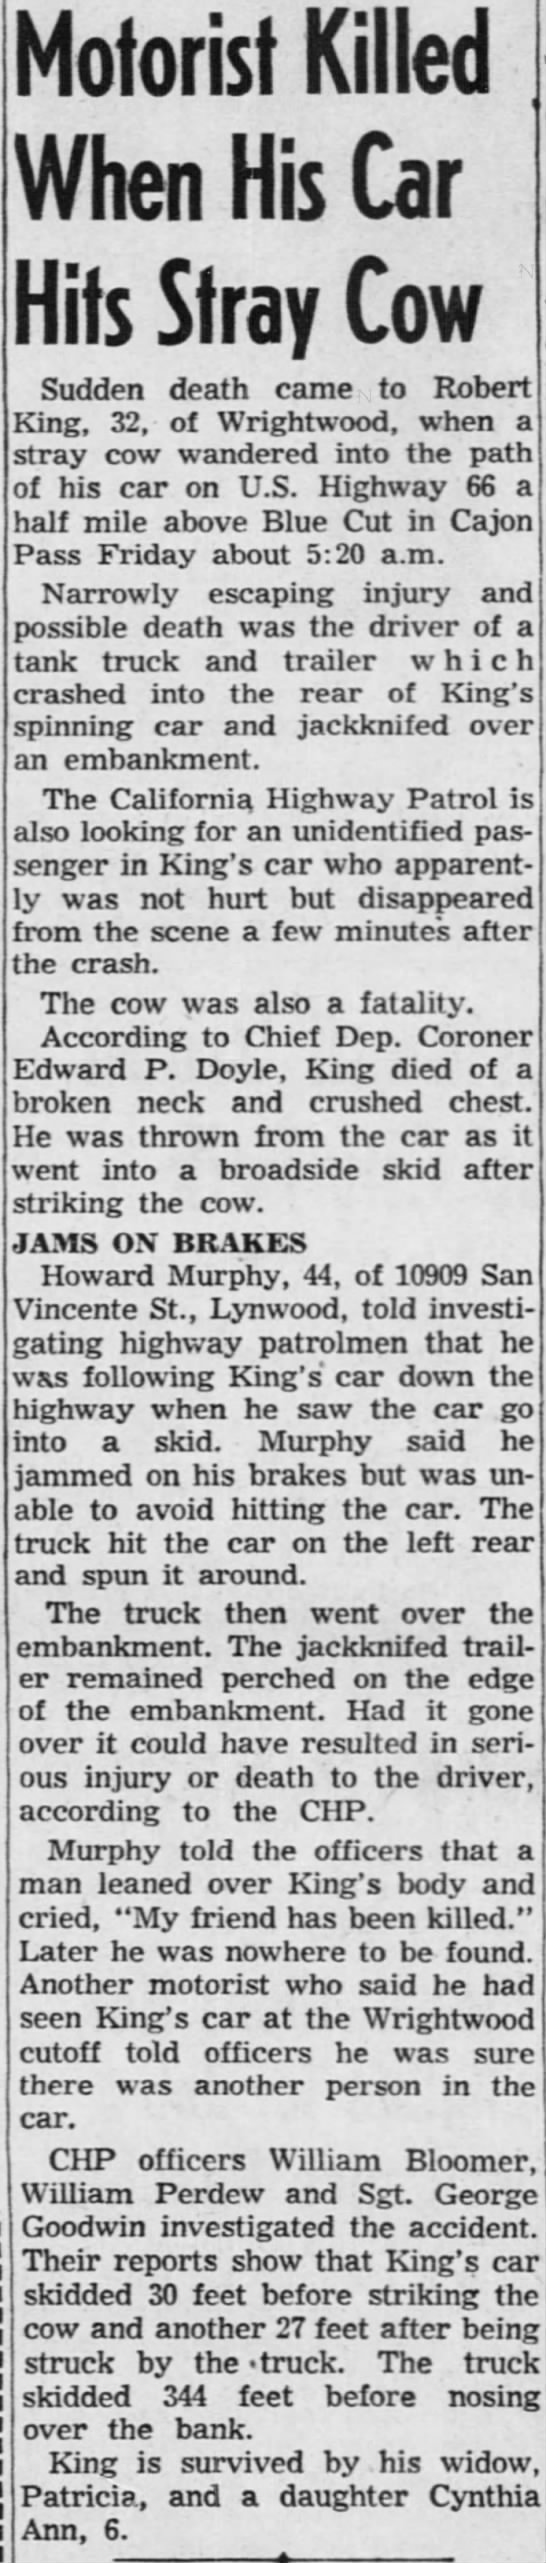 Howard Murphy, in car accident